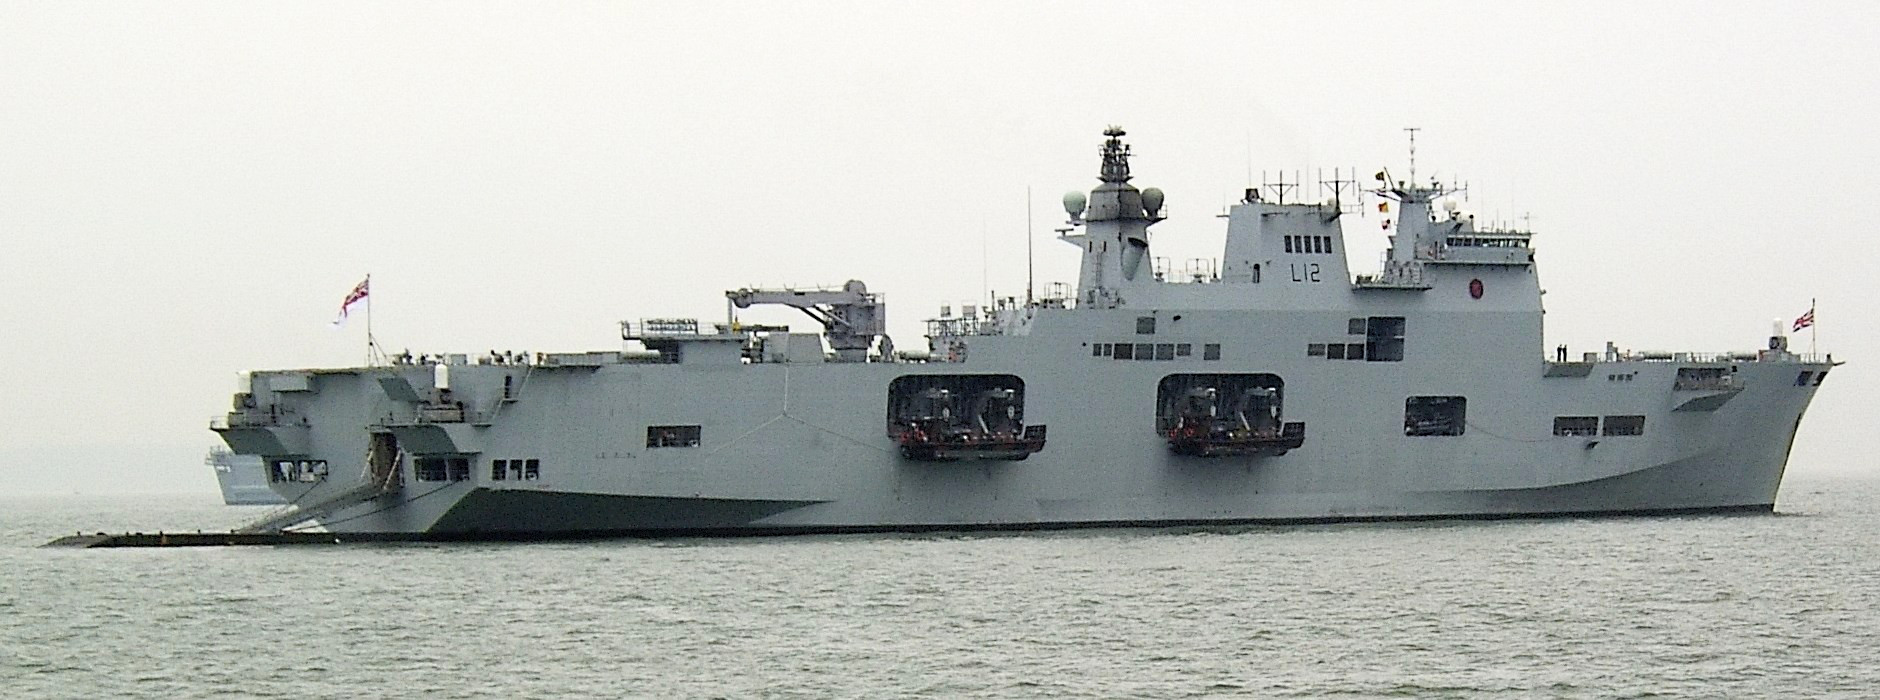 https://i0.wp.com/upload.wikimedia.org/wikipedia/commons/6/6e/HMS_Ocean_IFOS2005%2C_cropped.jpg